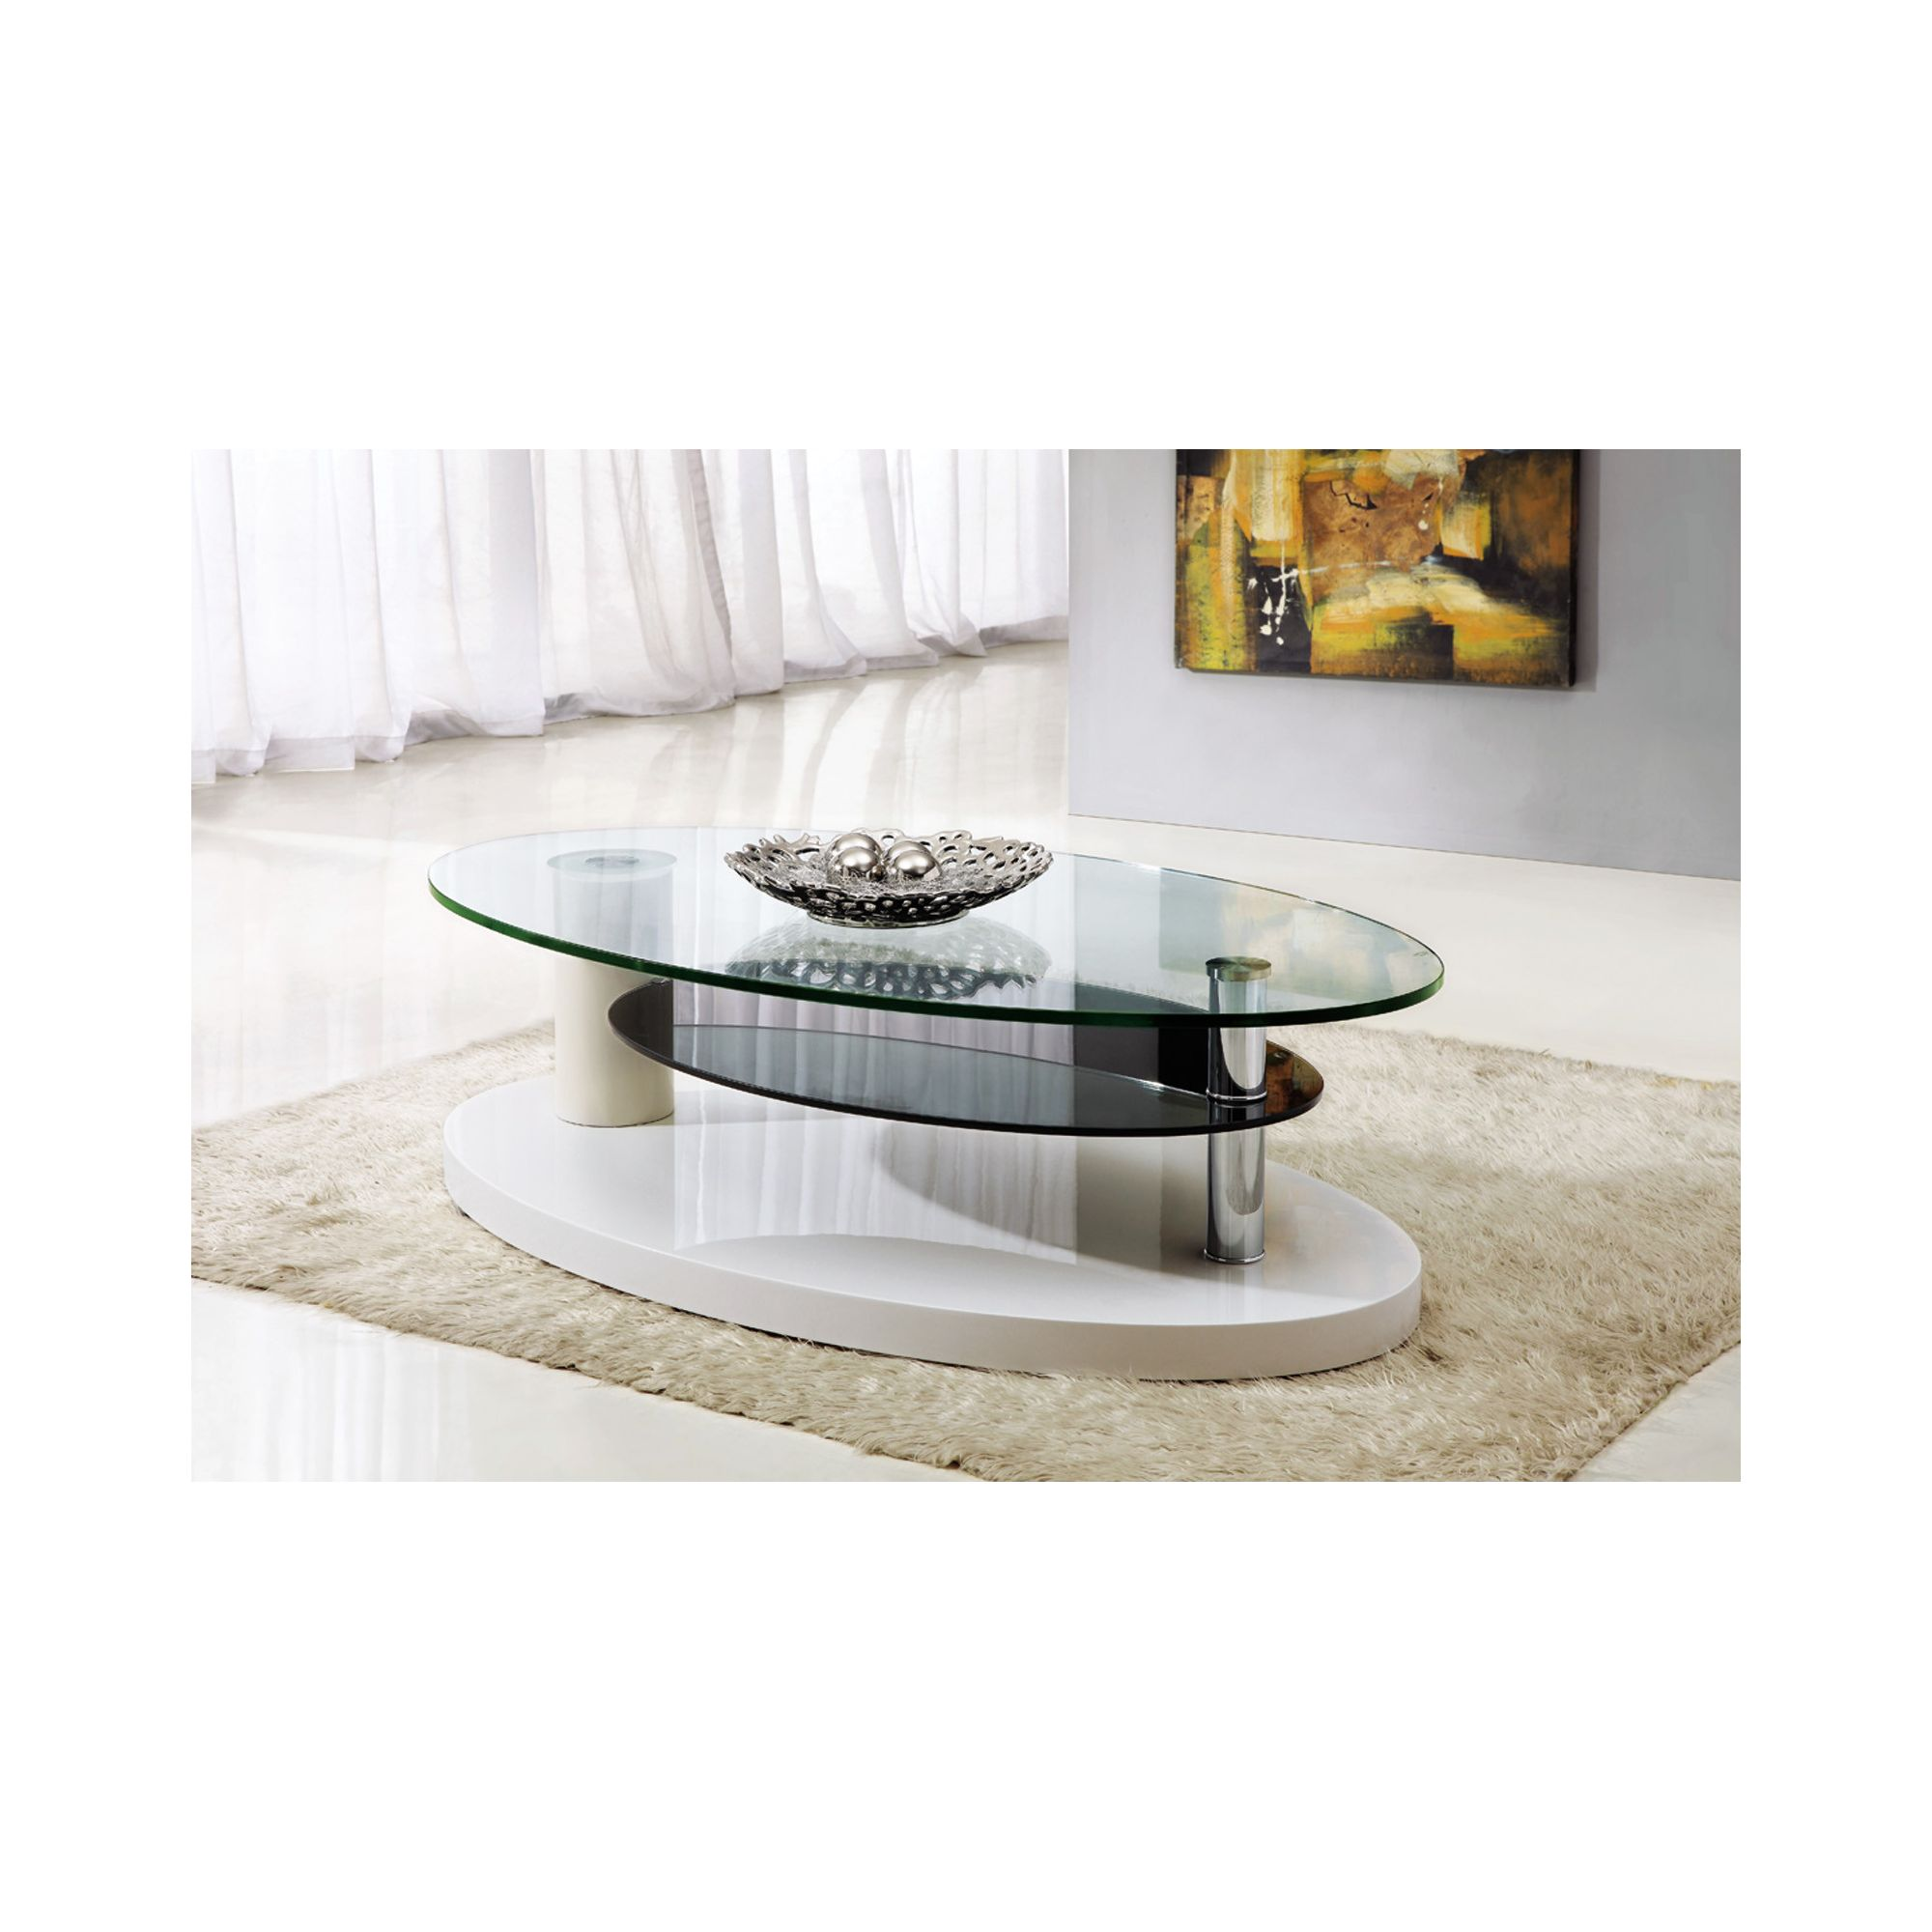 Giomani Designs Lunar Coffee Table - Shiny Beige at Tesco Direct